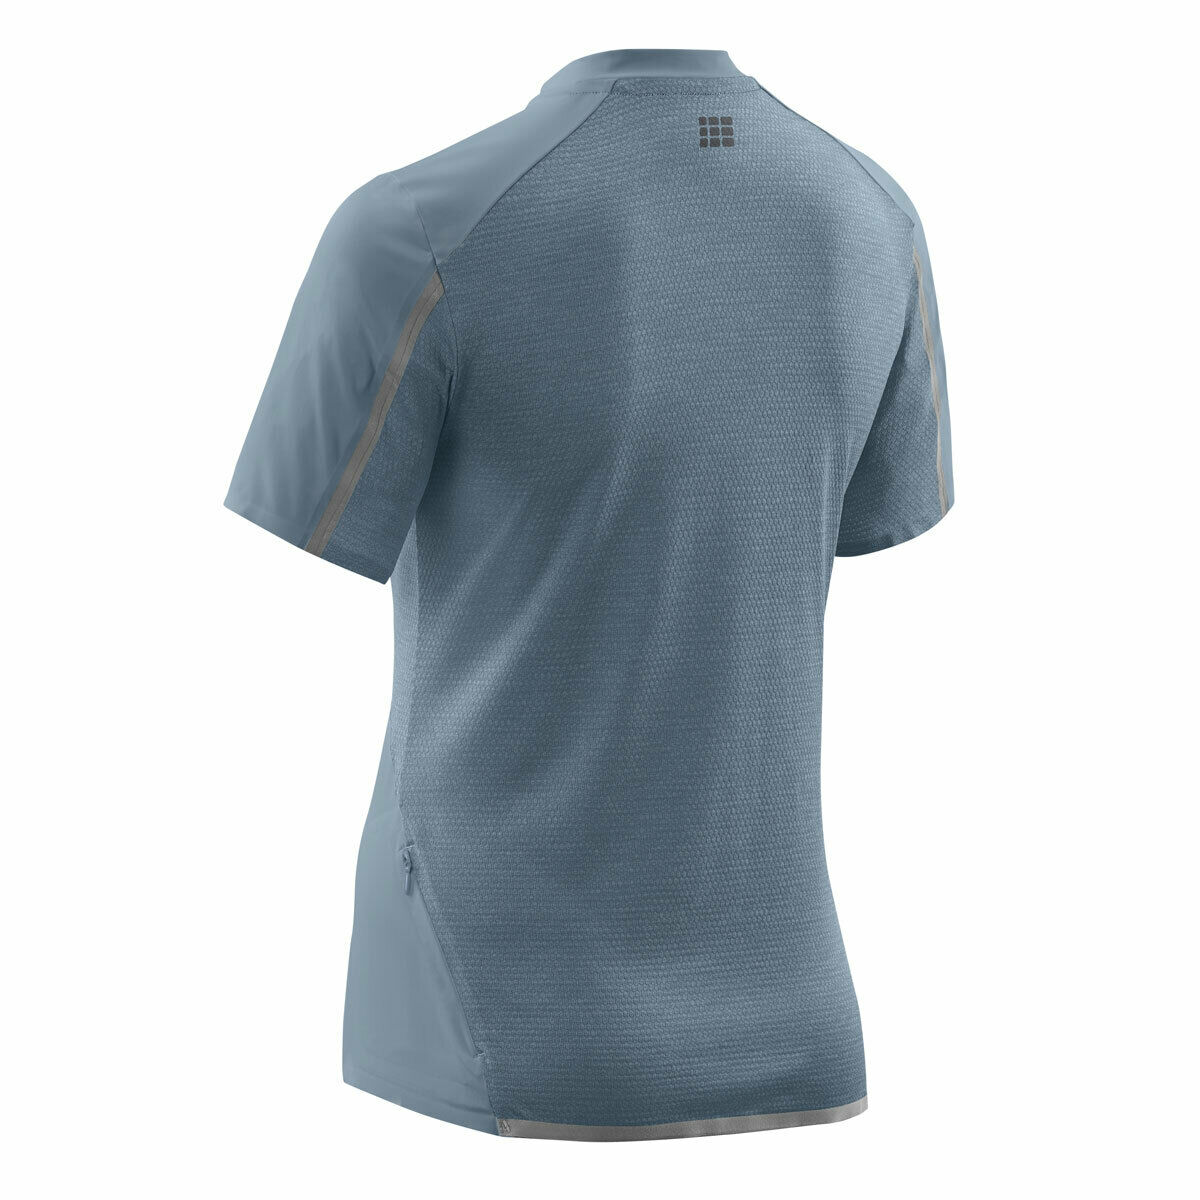 CEP RUN SHIRT SHORT SLEEVE Lady grau grau grau   W9A325 Funktionslaufshirt mit kurzem Arm 191461